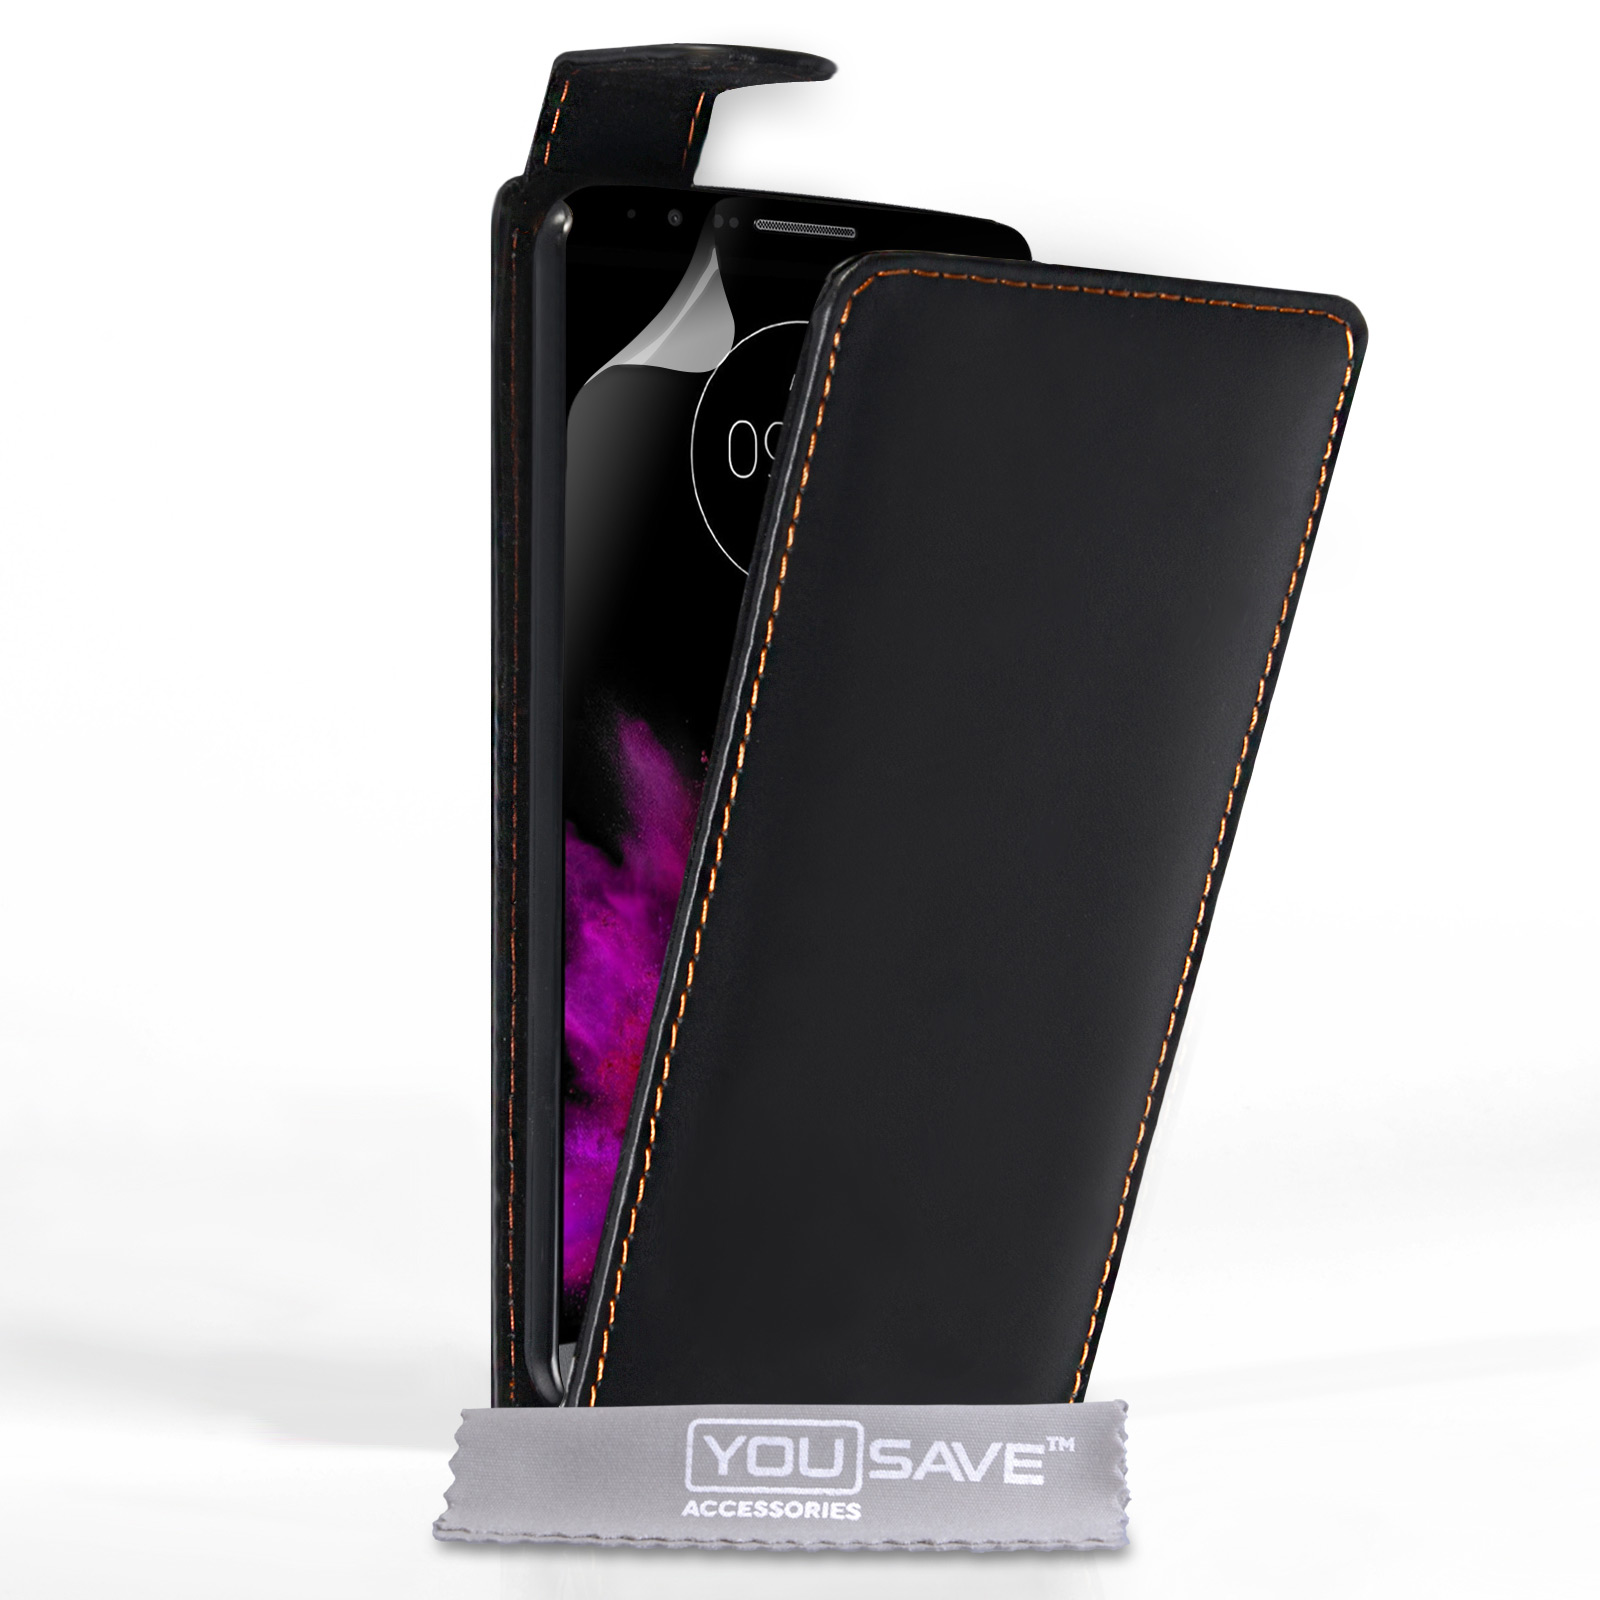 YouSave Accessories LG G4 Leather-Effect Wallet Case - Black